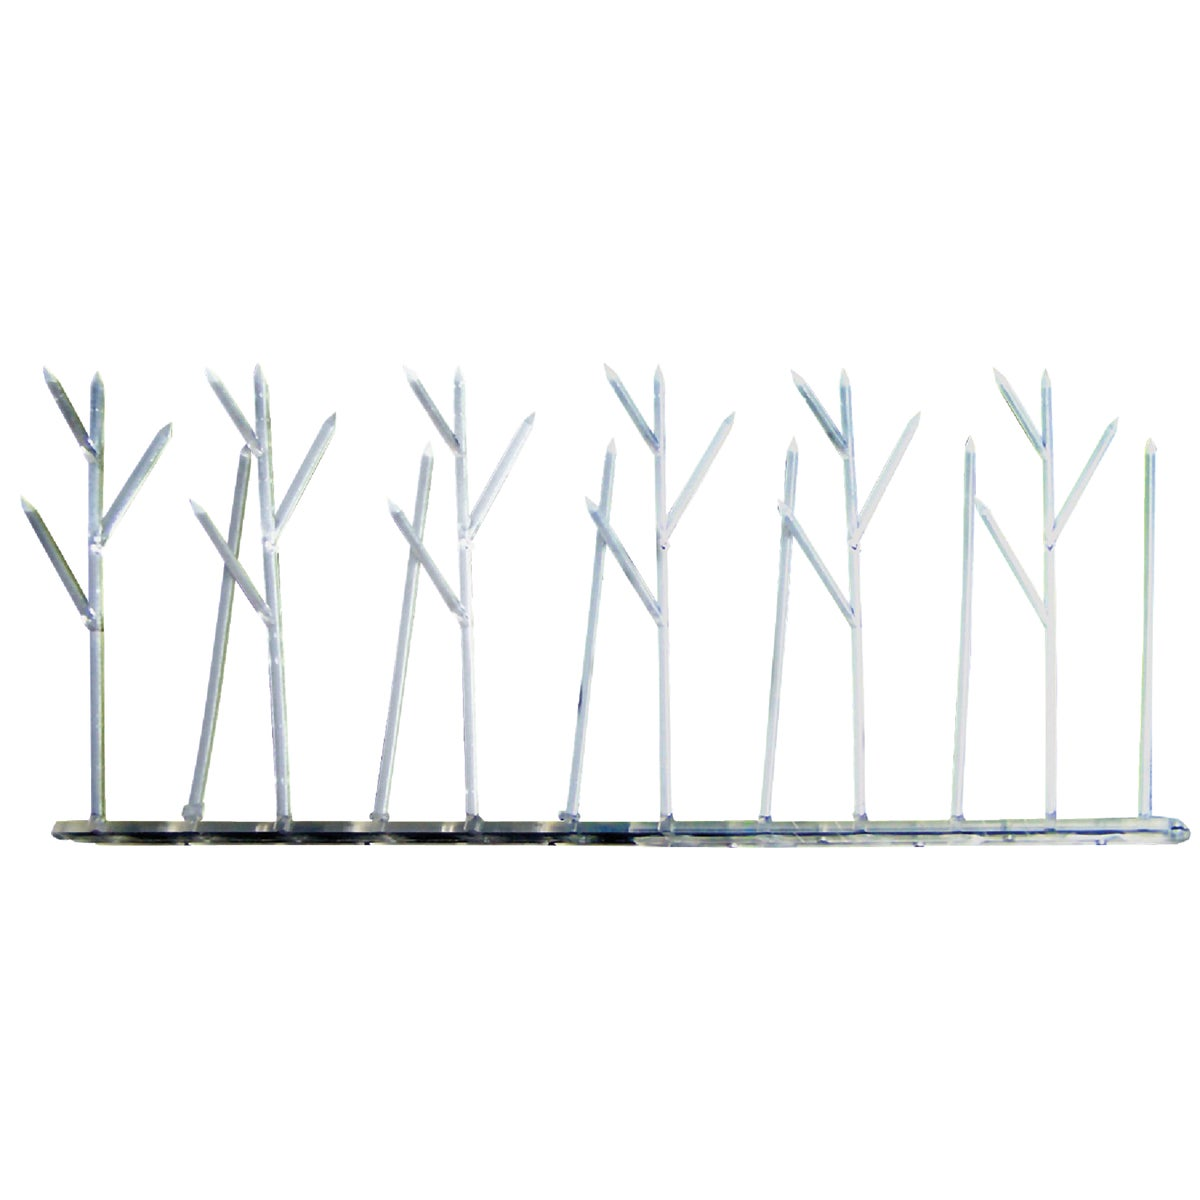 10' POLY BIRD SPIKE KIT - SP-10-NR by Bird X Inc